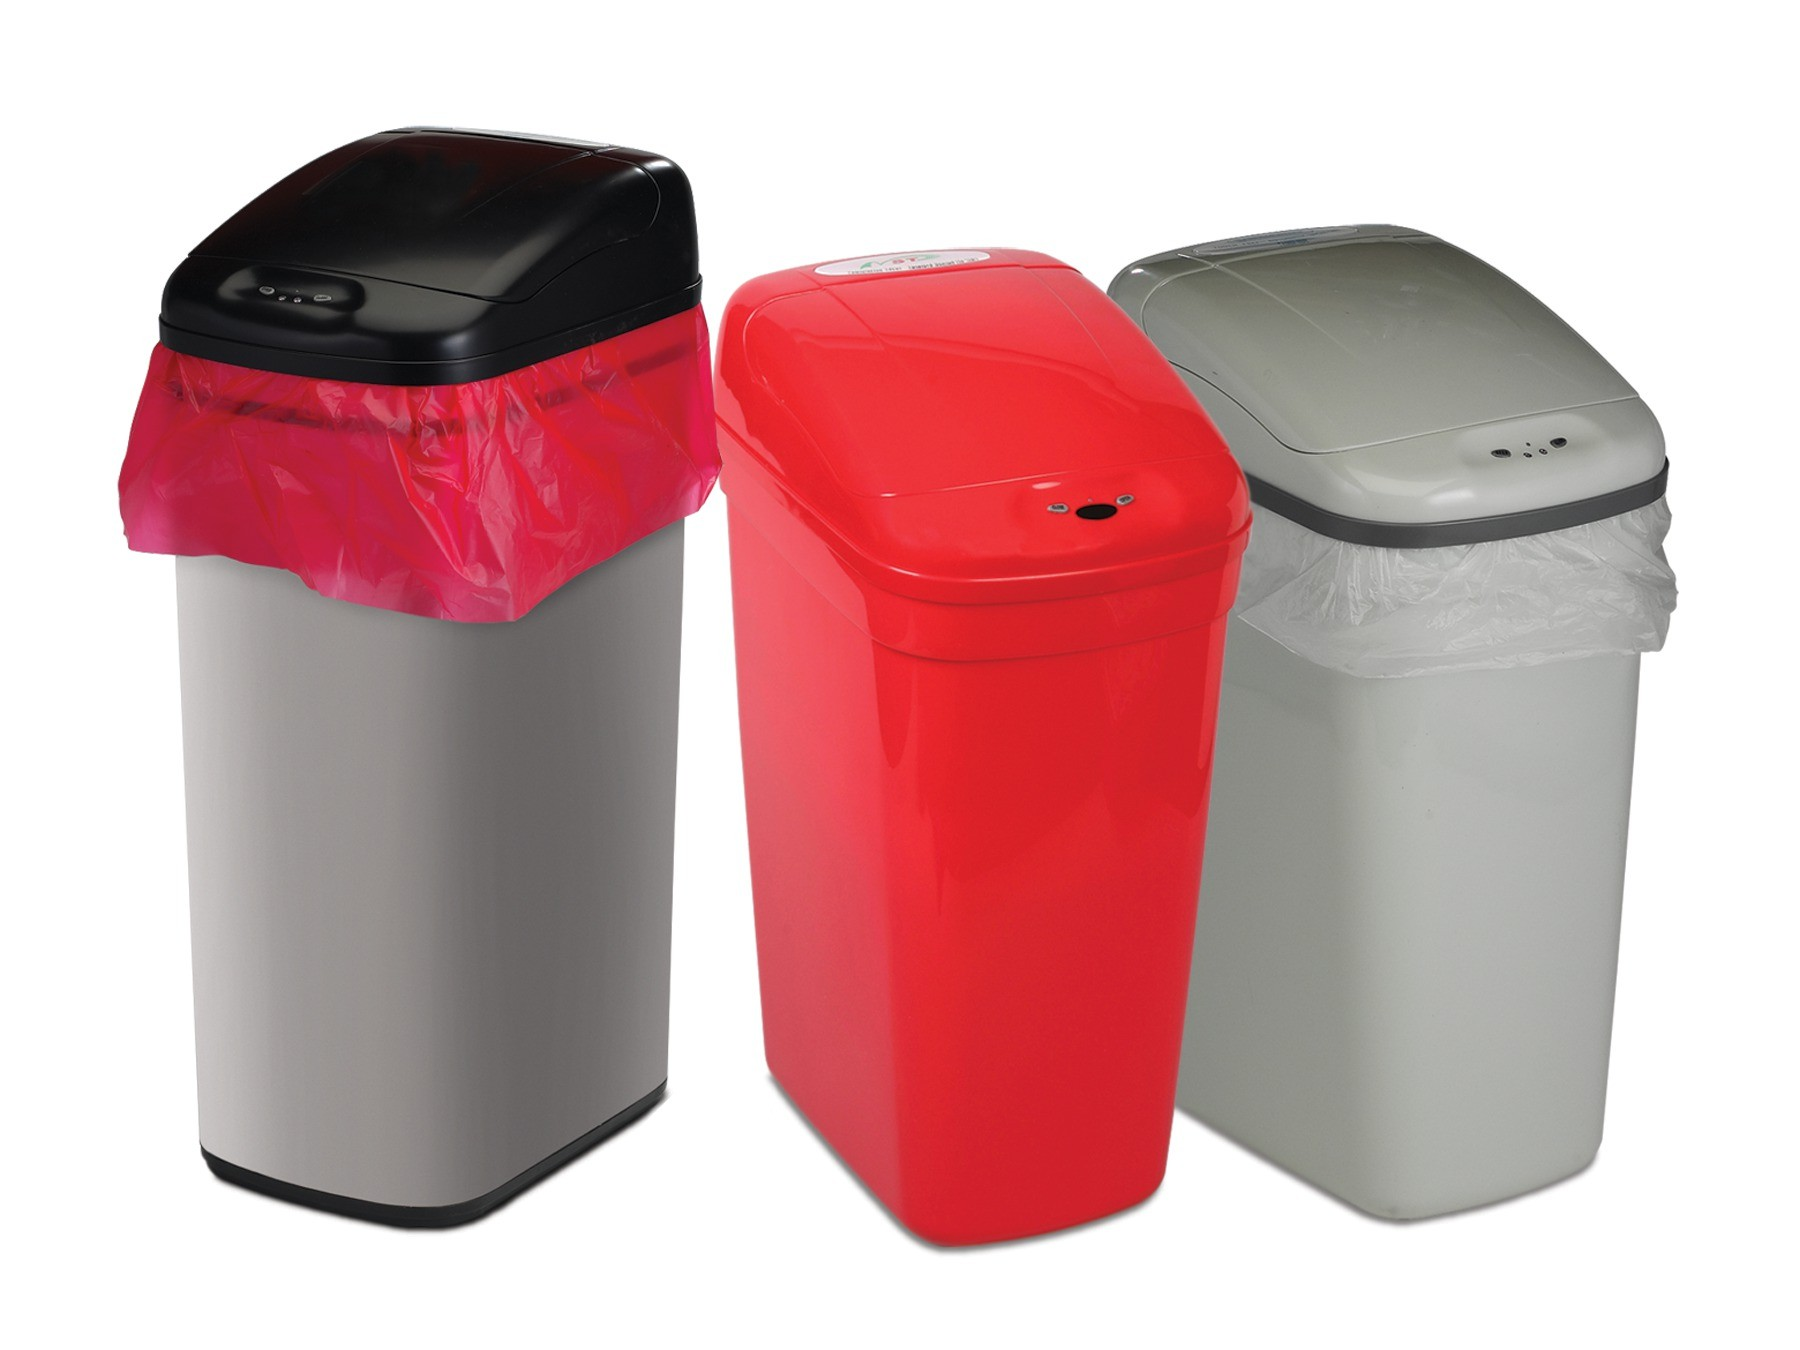 SP Bel-Art Touch Free 7.3 Gallon Automatic Waste Can with Red Lid